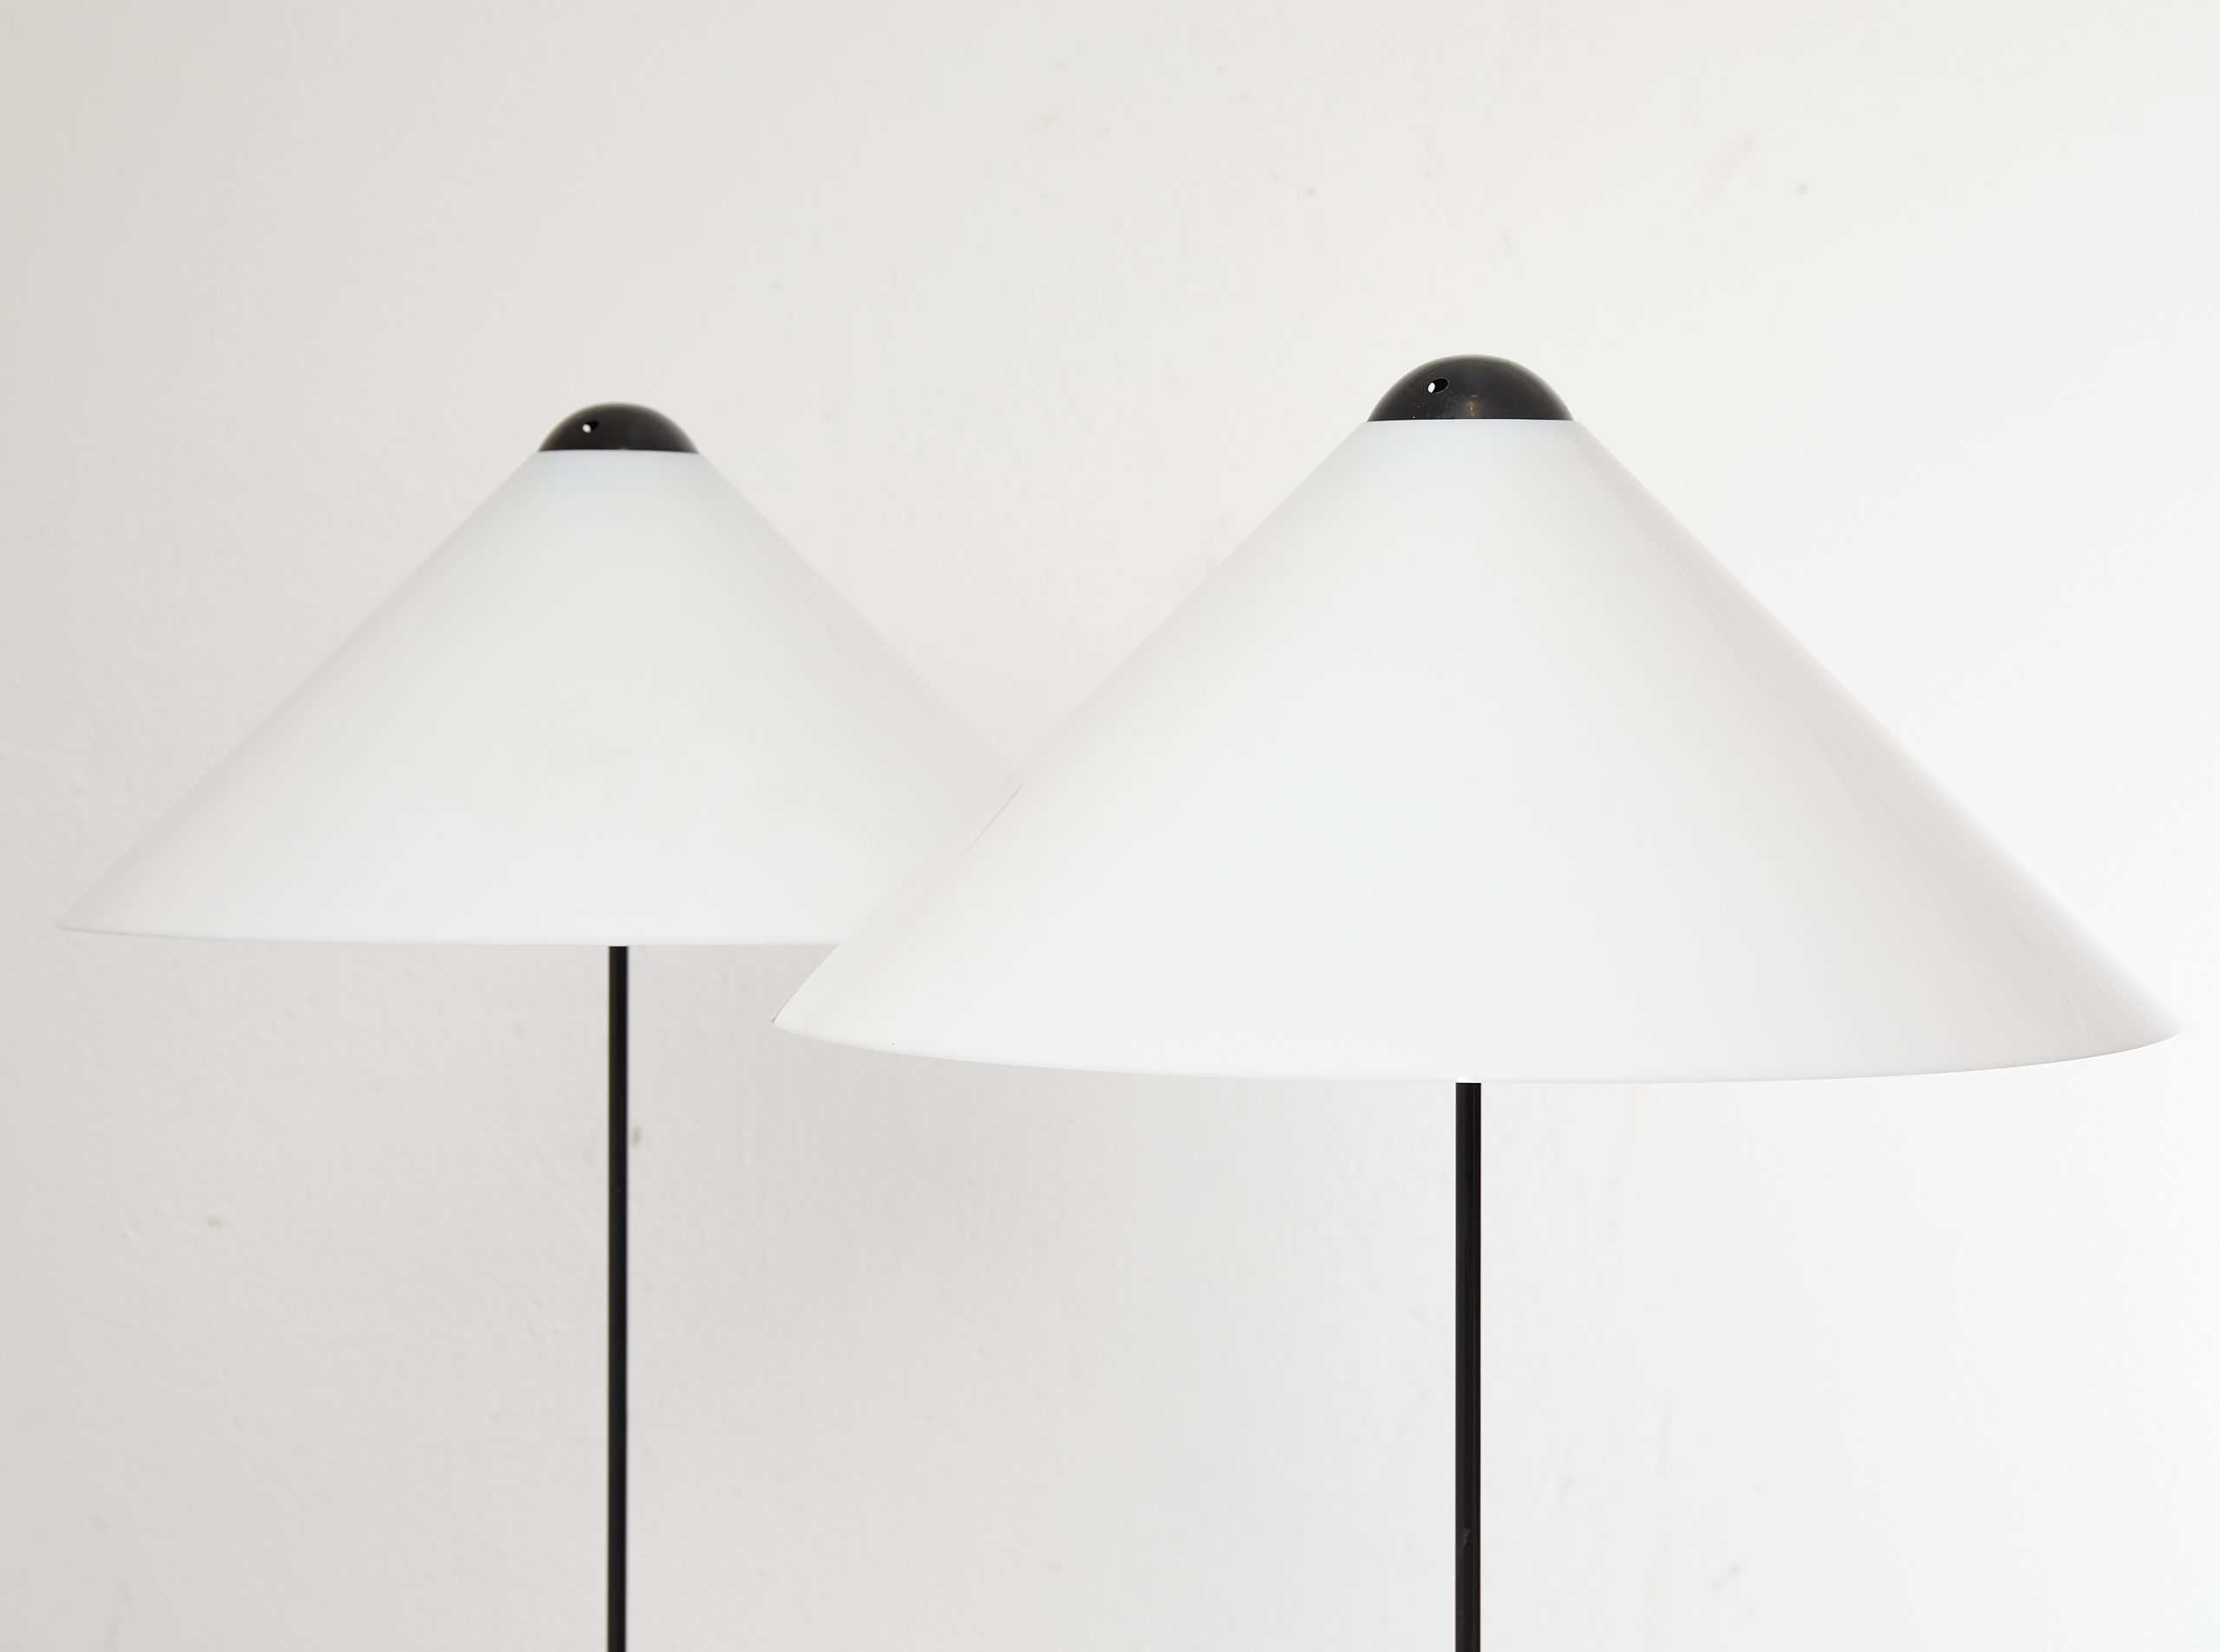 pair-of-snow-floor-lamps-by-vico-magistretti-oluce-1973-image-06